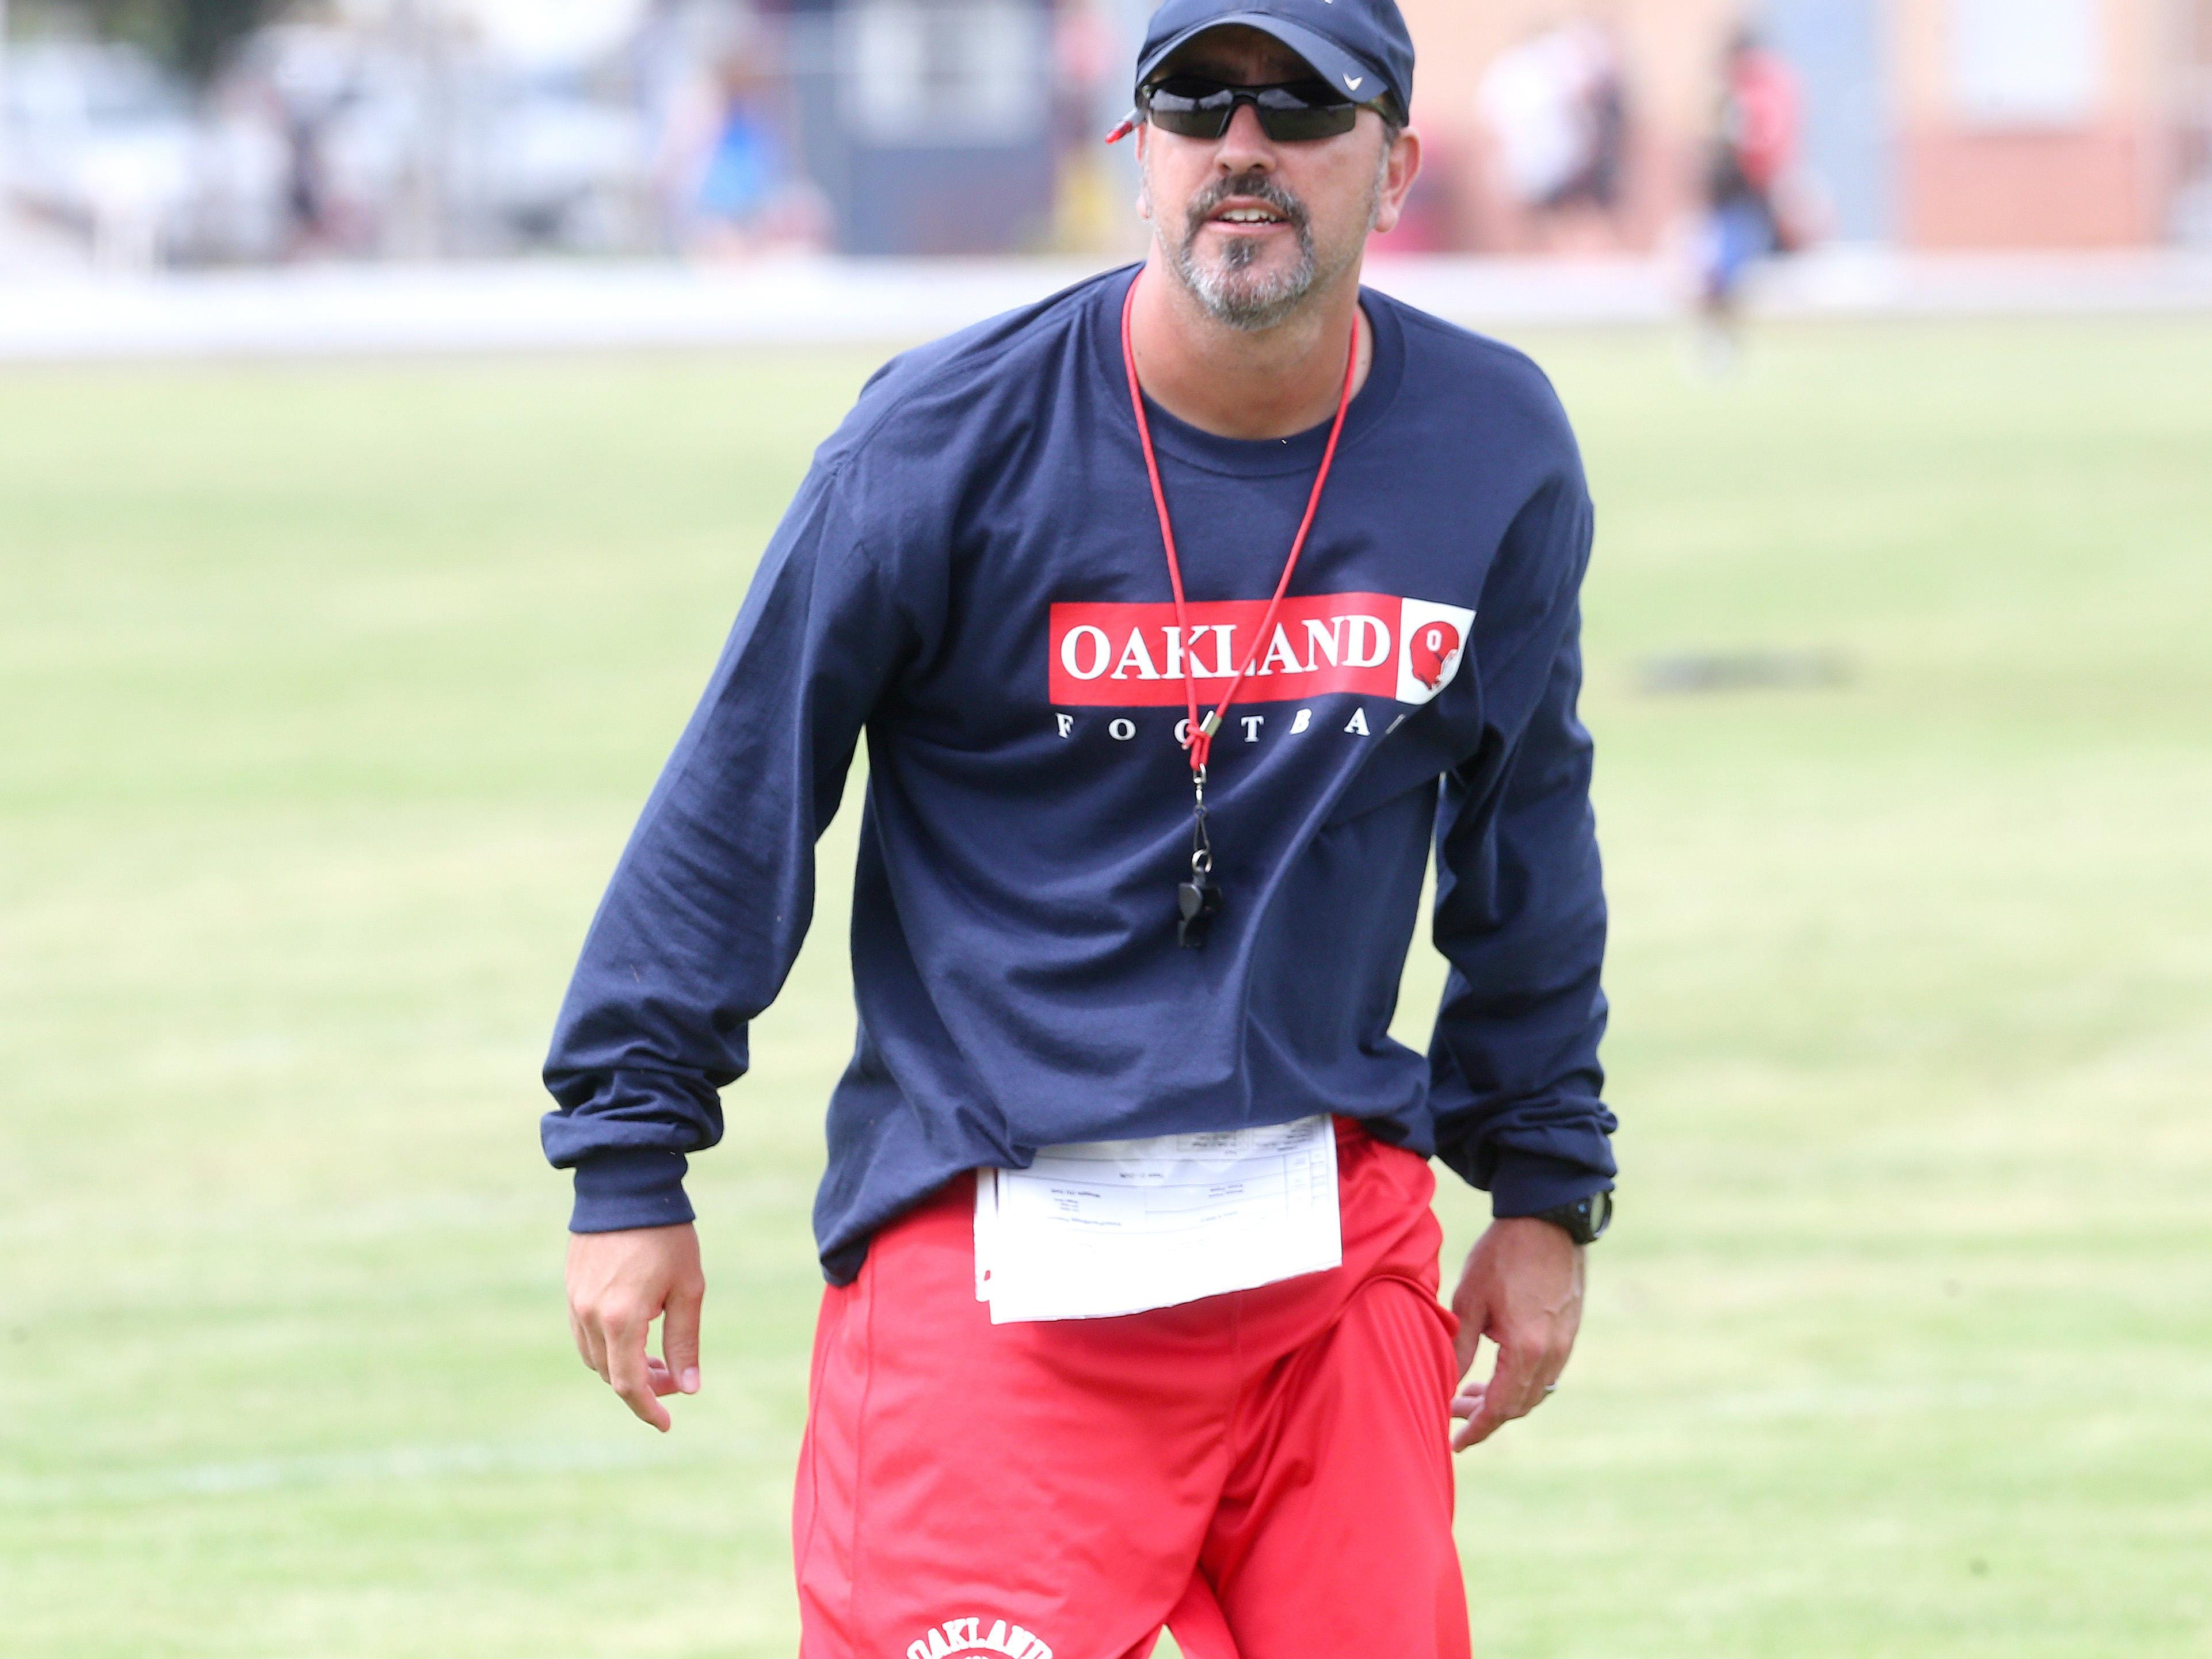 Oakand first-year football coach Kevin Creasy must find another game after Pulaski Academy in Arkansas dropped the Patriots after finding a new game.